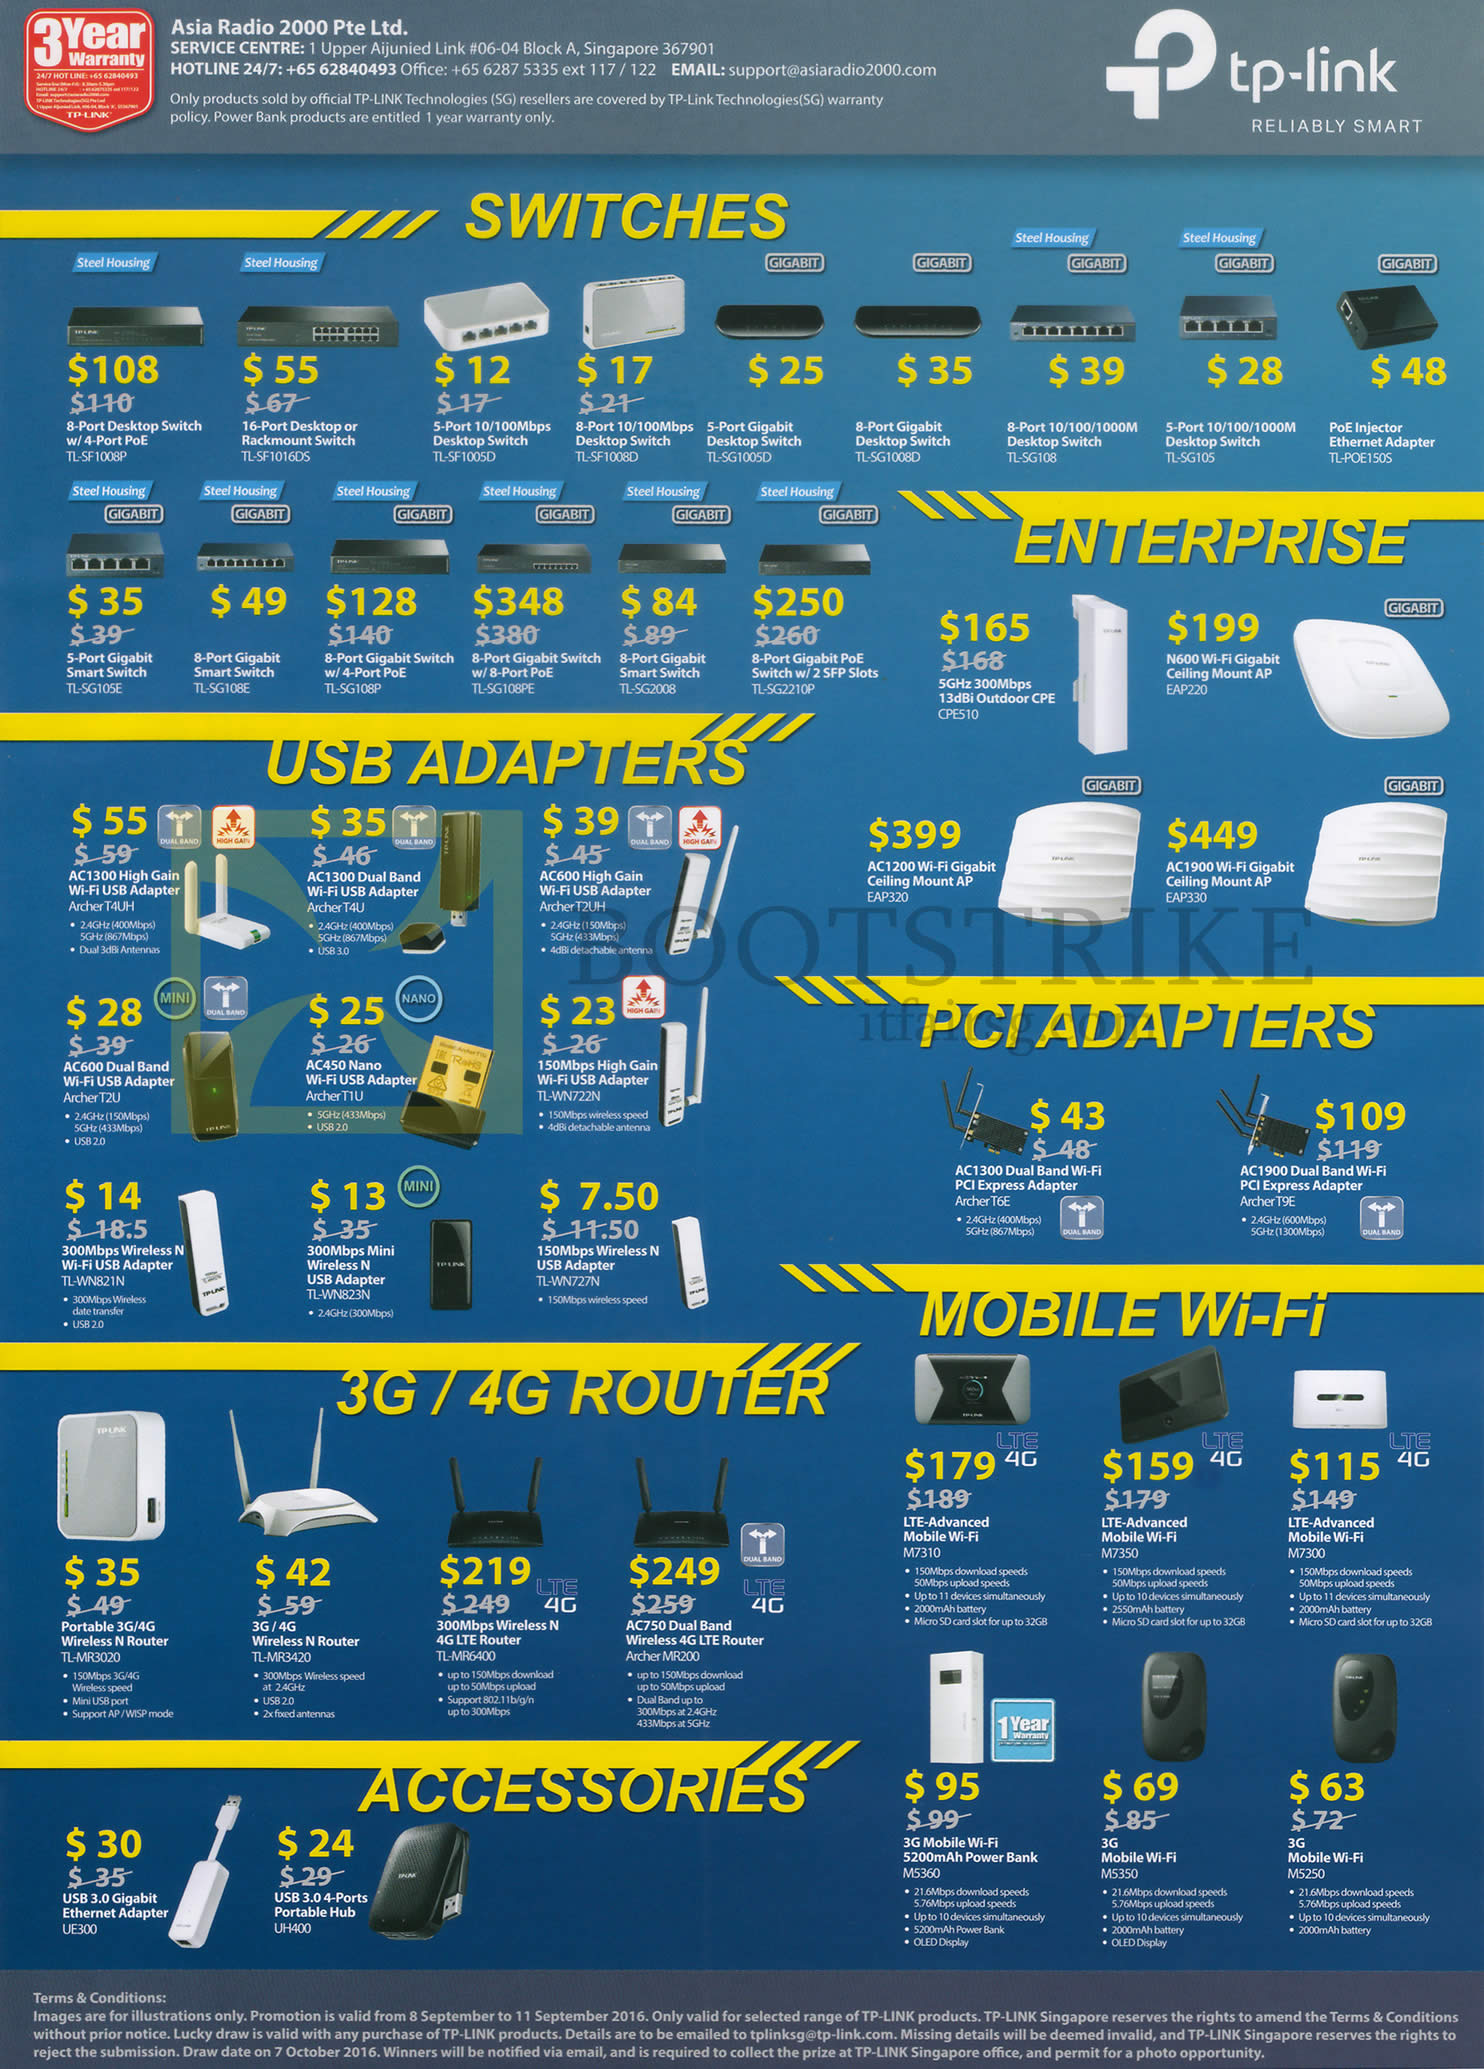 COMEX 2016 price list image brochure of TP-Link Networking Wireless Switches, Enterprise, USB Adapters, PCI Adapters, Mobile Wi-Fi, 3G, 4G Routers, Accessories